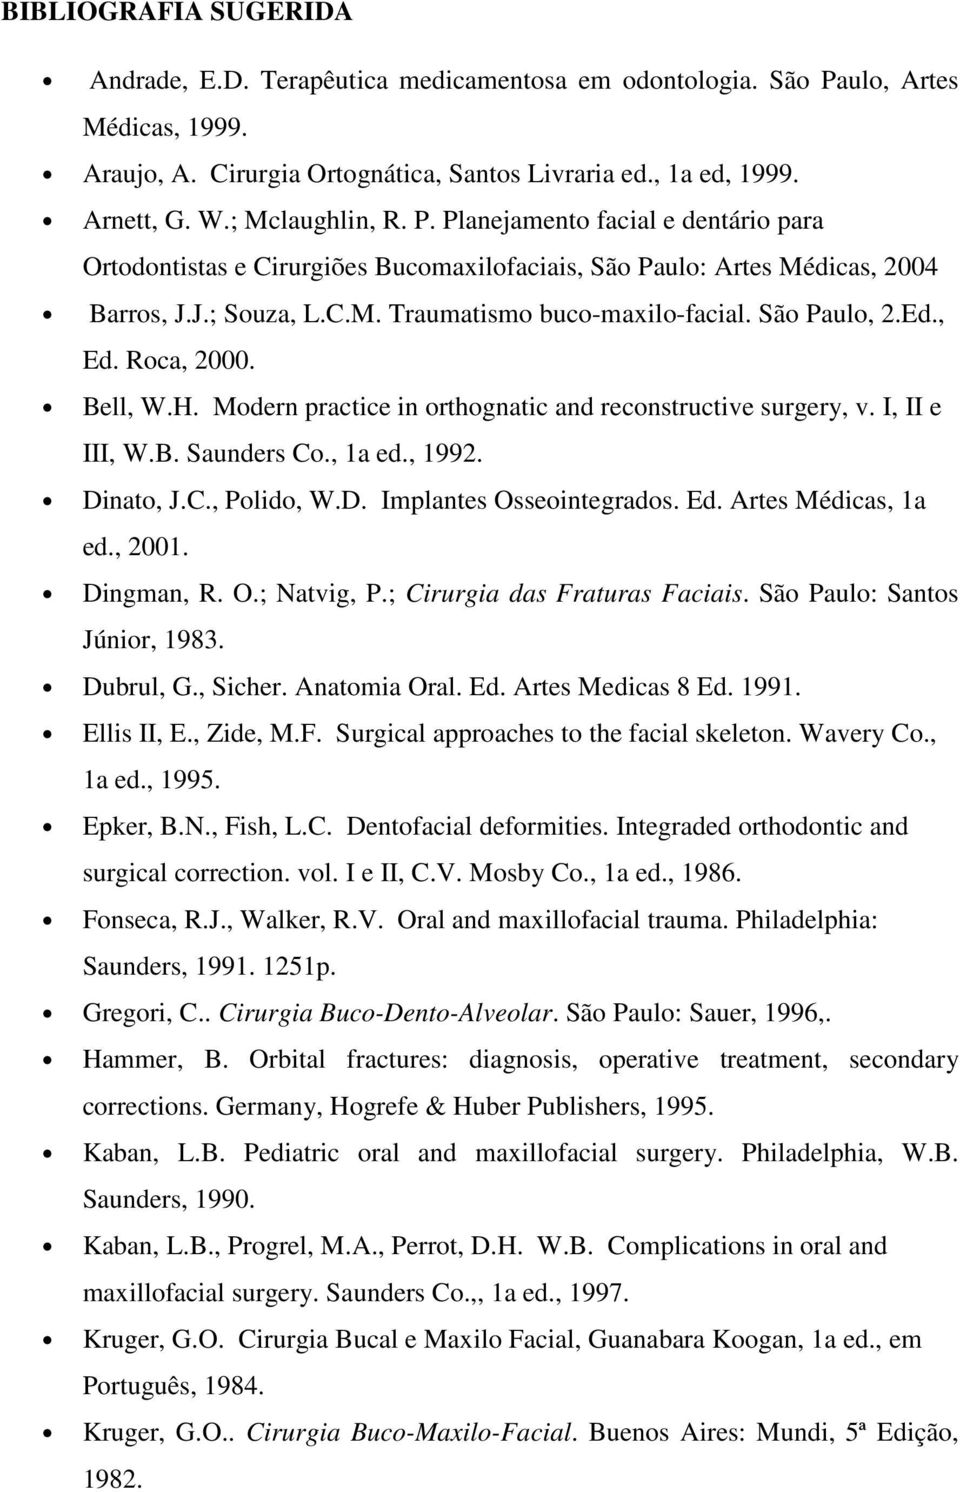 São Paulo, 2.Ed., Ed. Roca, 2000. Bell, W.H. Modern practice in orthognatic and reconstructive surgery, v. I, II e III, W.B. Saunders Co., 1a ed., 1992. Dinato, J.C., Polido, W.D. Implantes Osseointegrados.